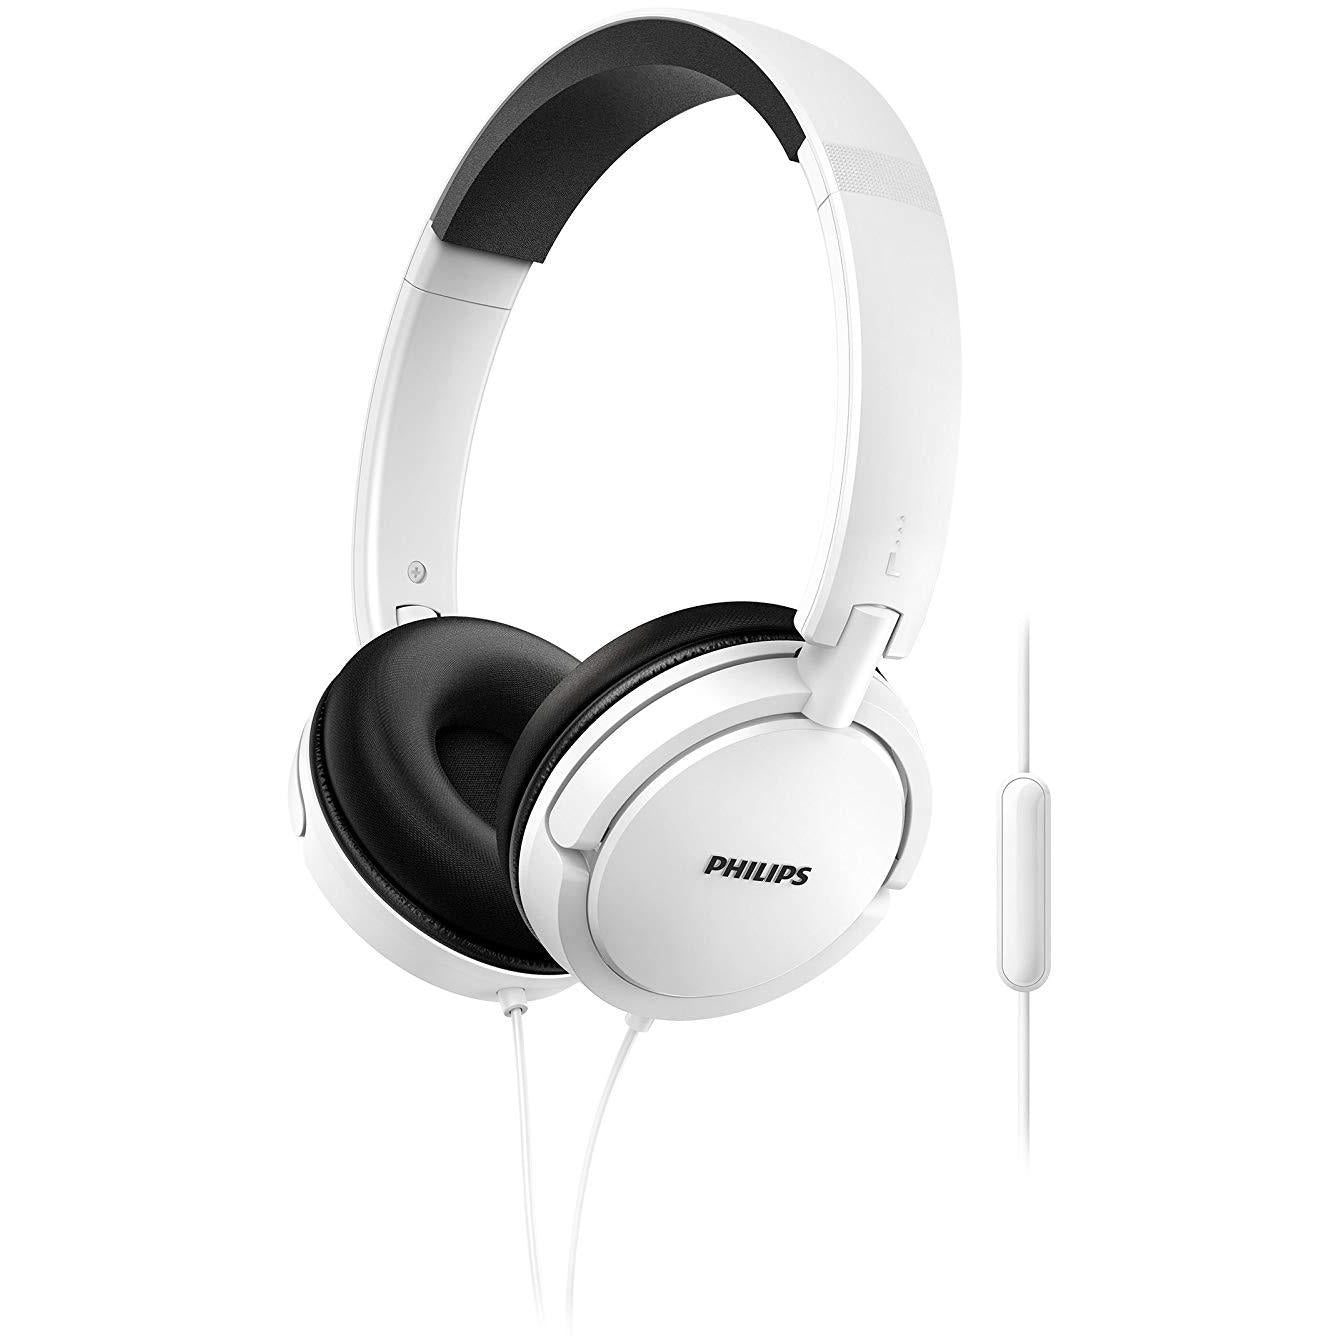 Philips on-ear headphones SHL5005WT/00 on-ear headphones with cable White [Accessories]